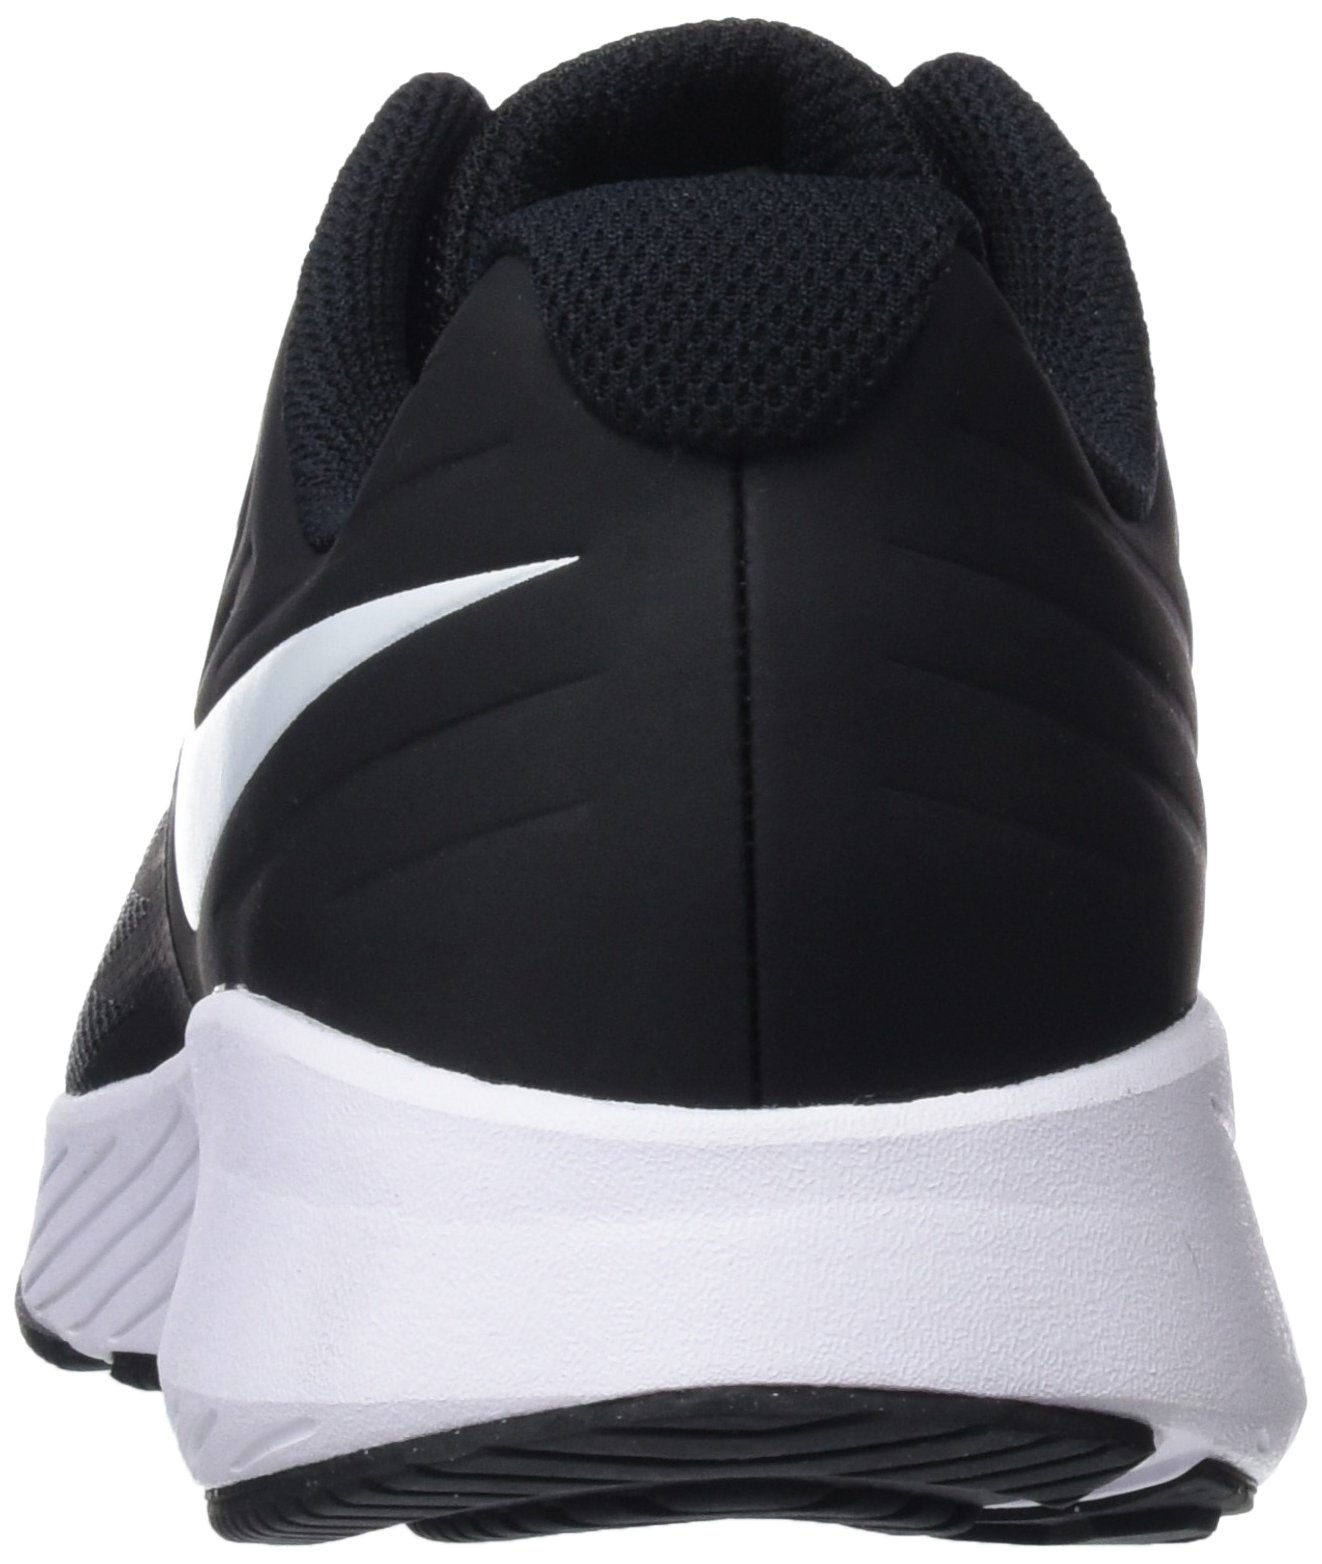 Nike Kids' Grade School Star Runner Running Shoes (3.5, Black/White) by Nike (Image #2)